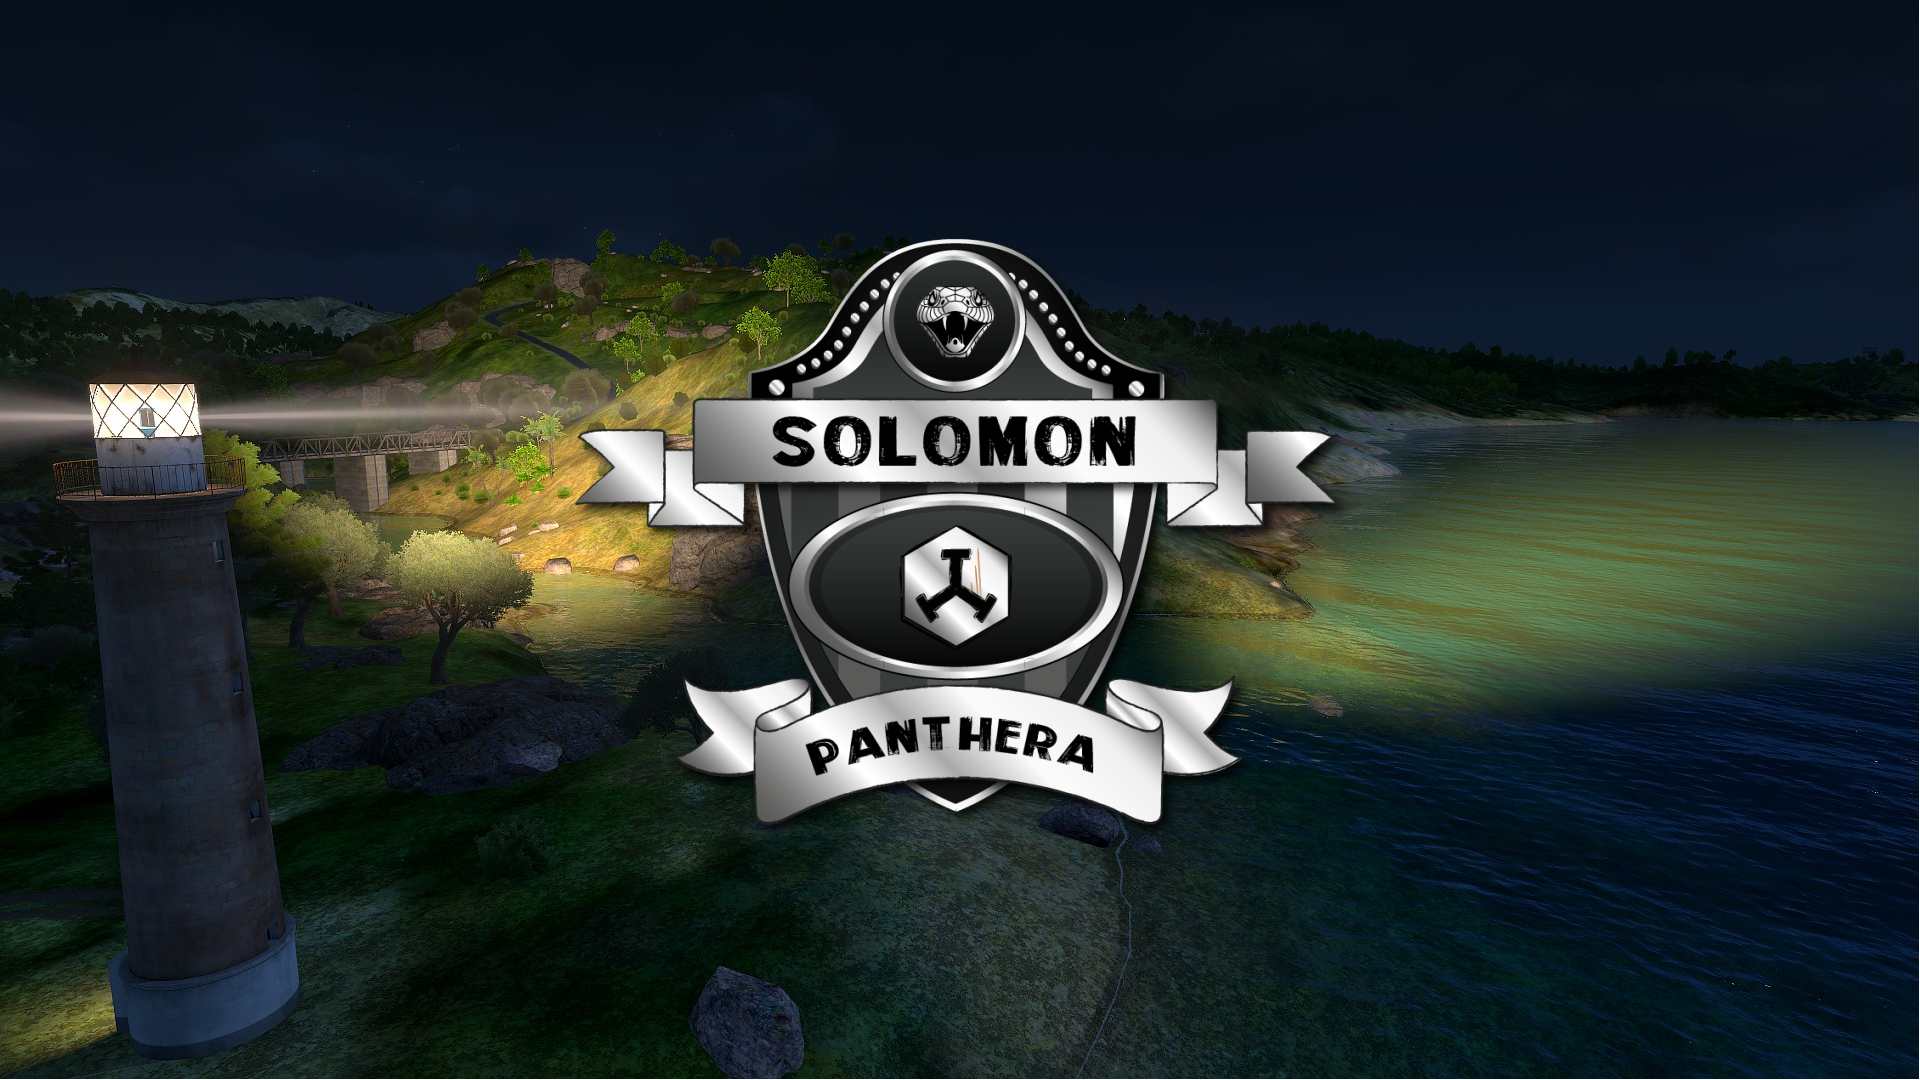 https://cdn.discordapp.com/attachments/350286634618716160/351717441593933824/Kampagne_Solomon_Mission_2.jpg